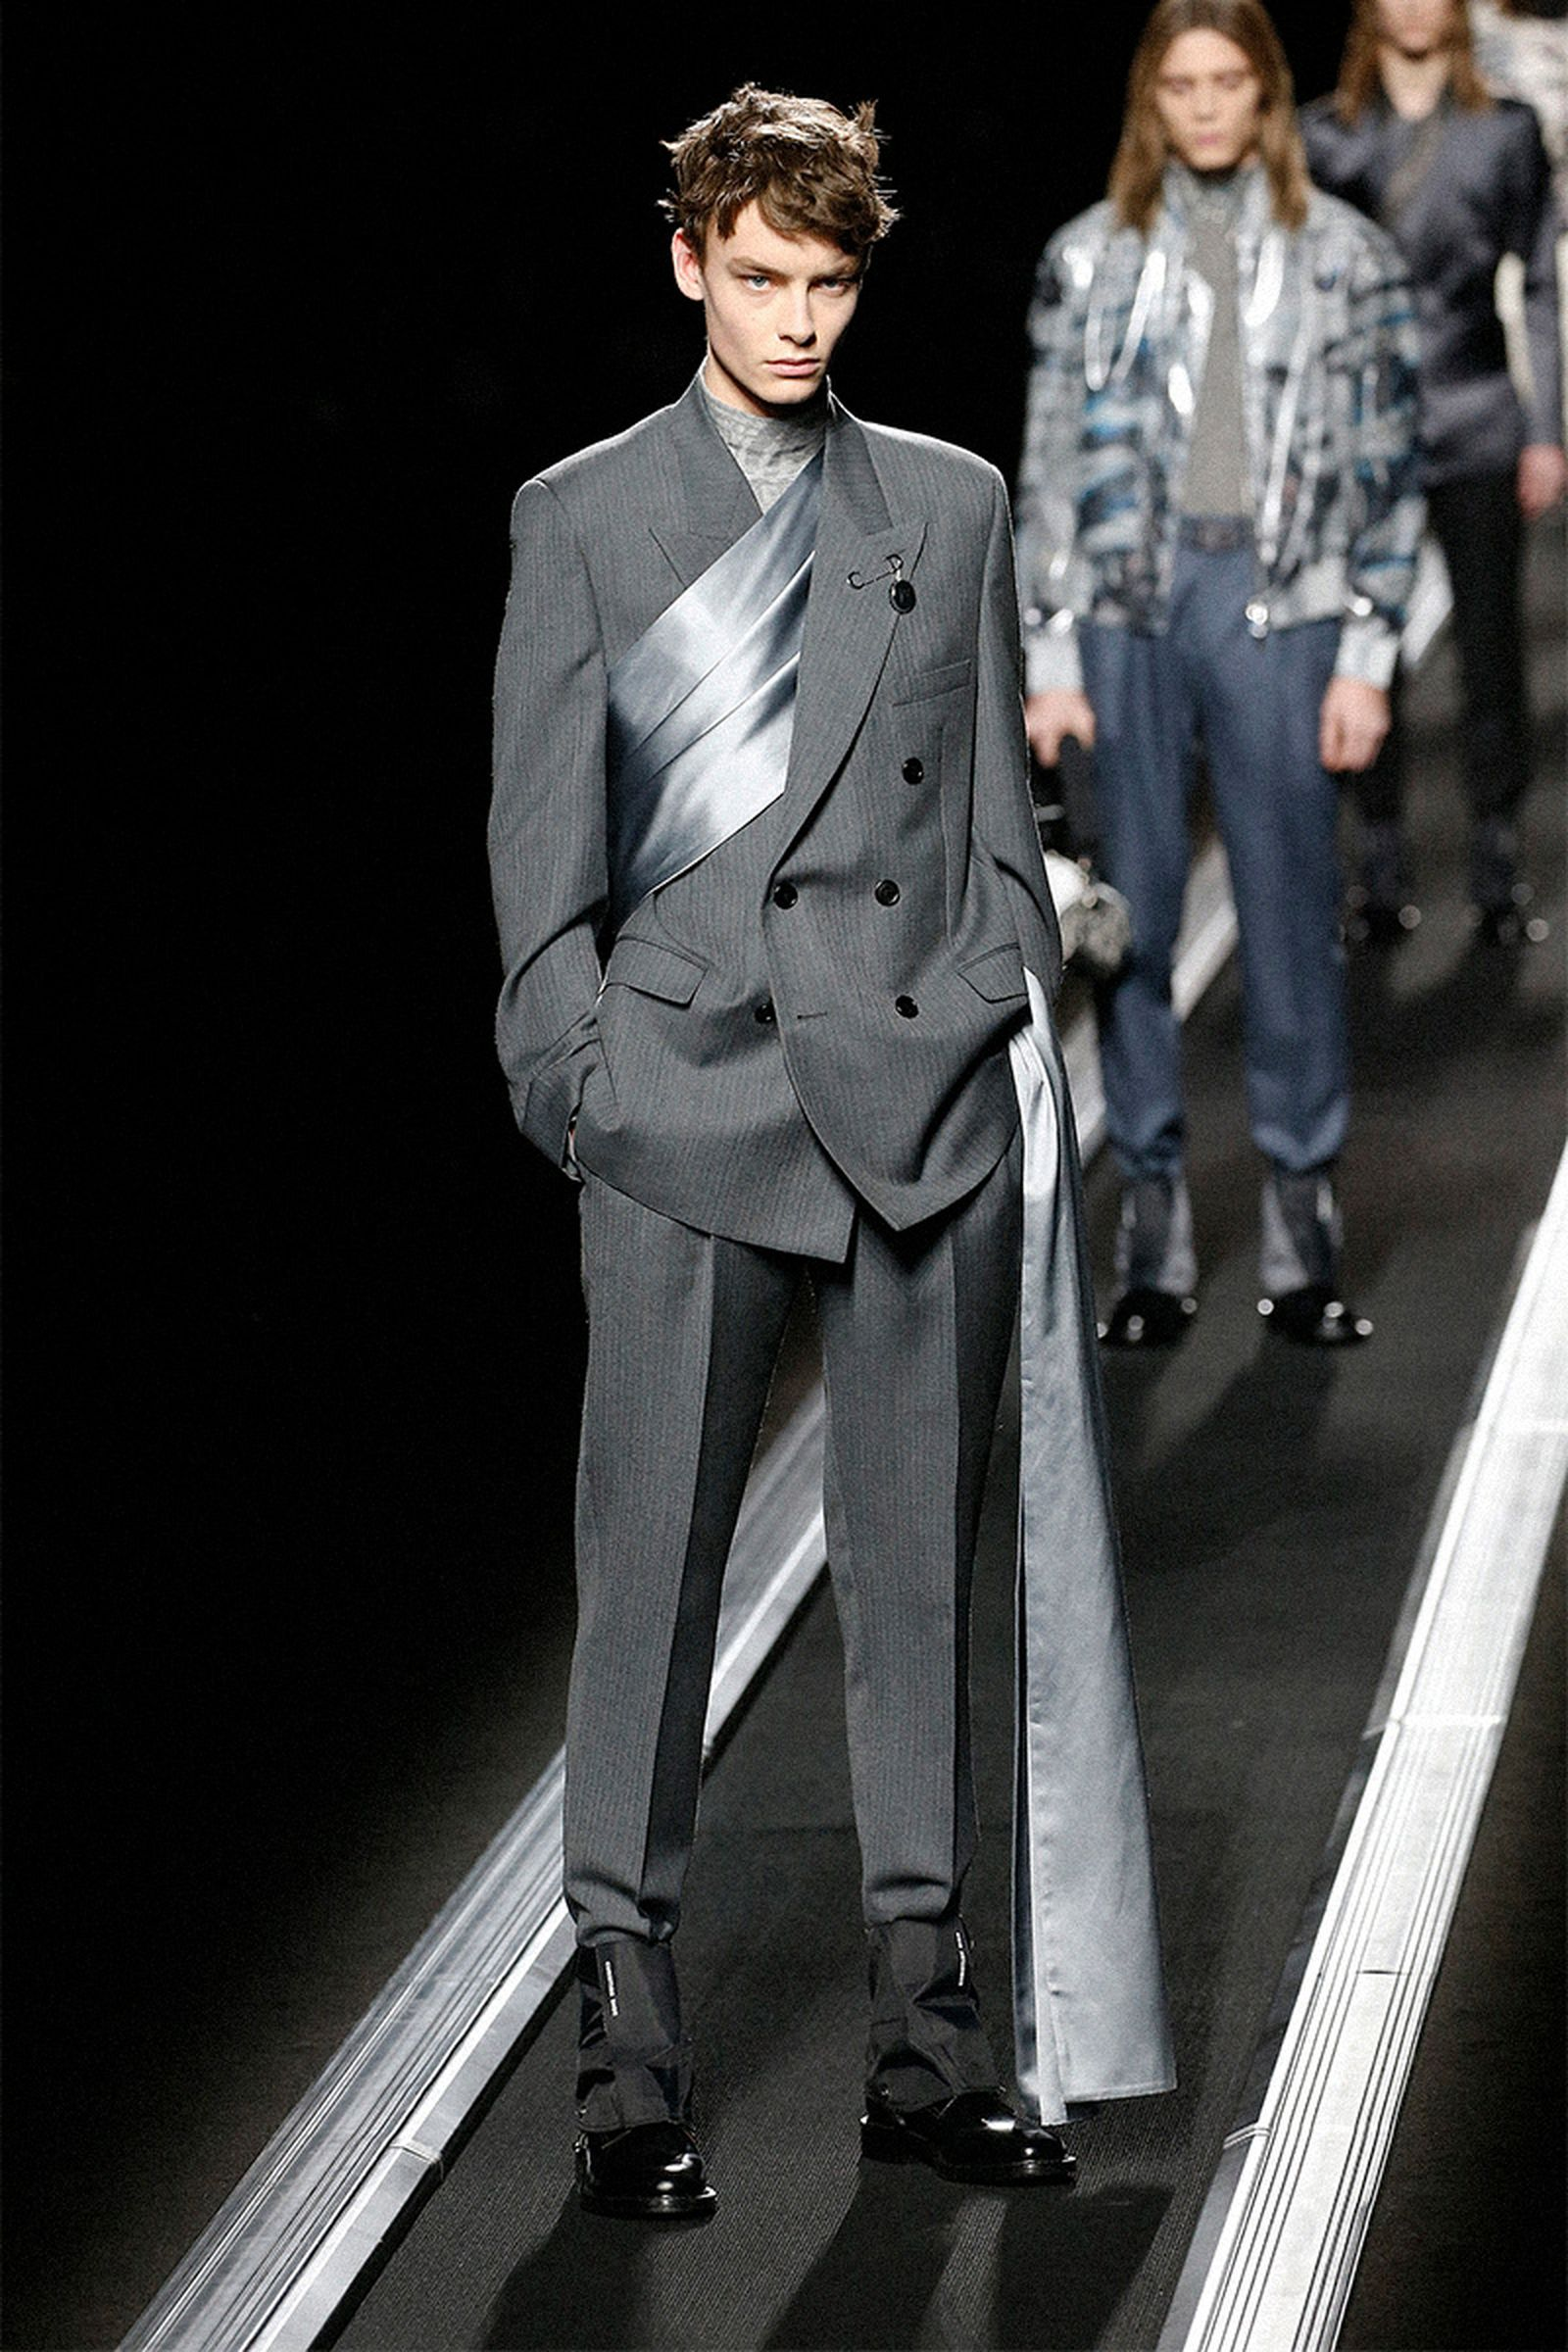 dior-homme-conspiracy-theory-batman-tenet-trailers-11